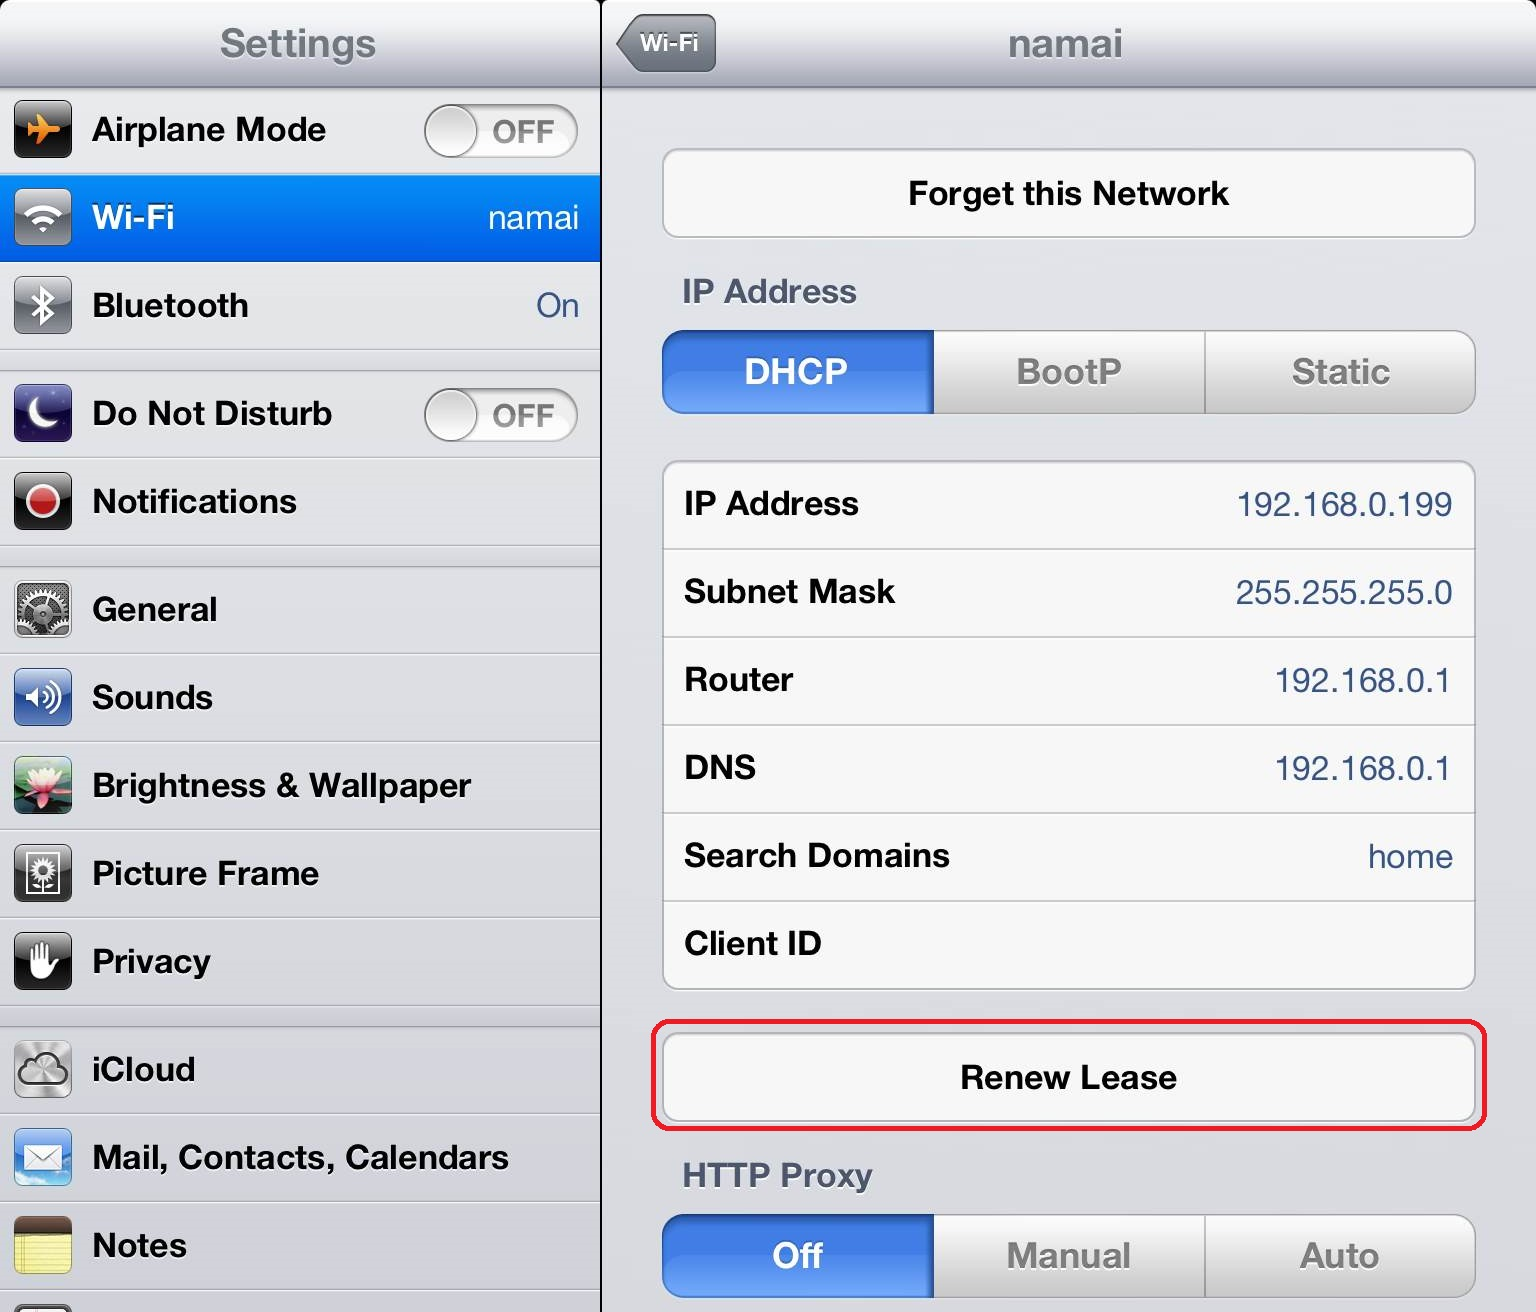 How can i change my network name on iphone